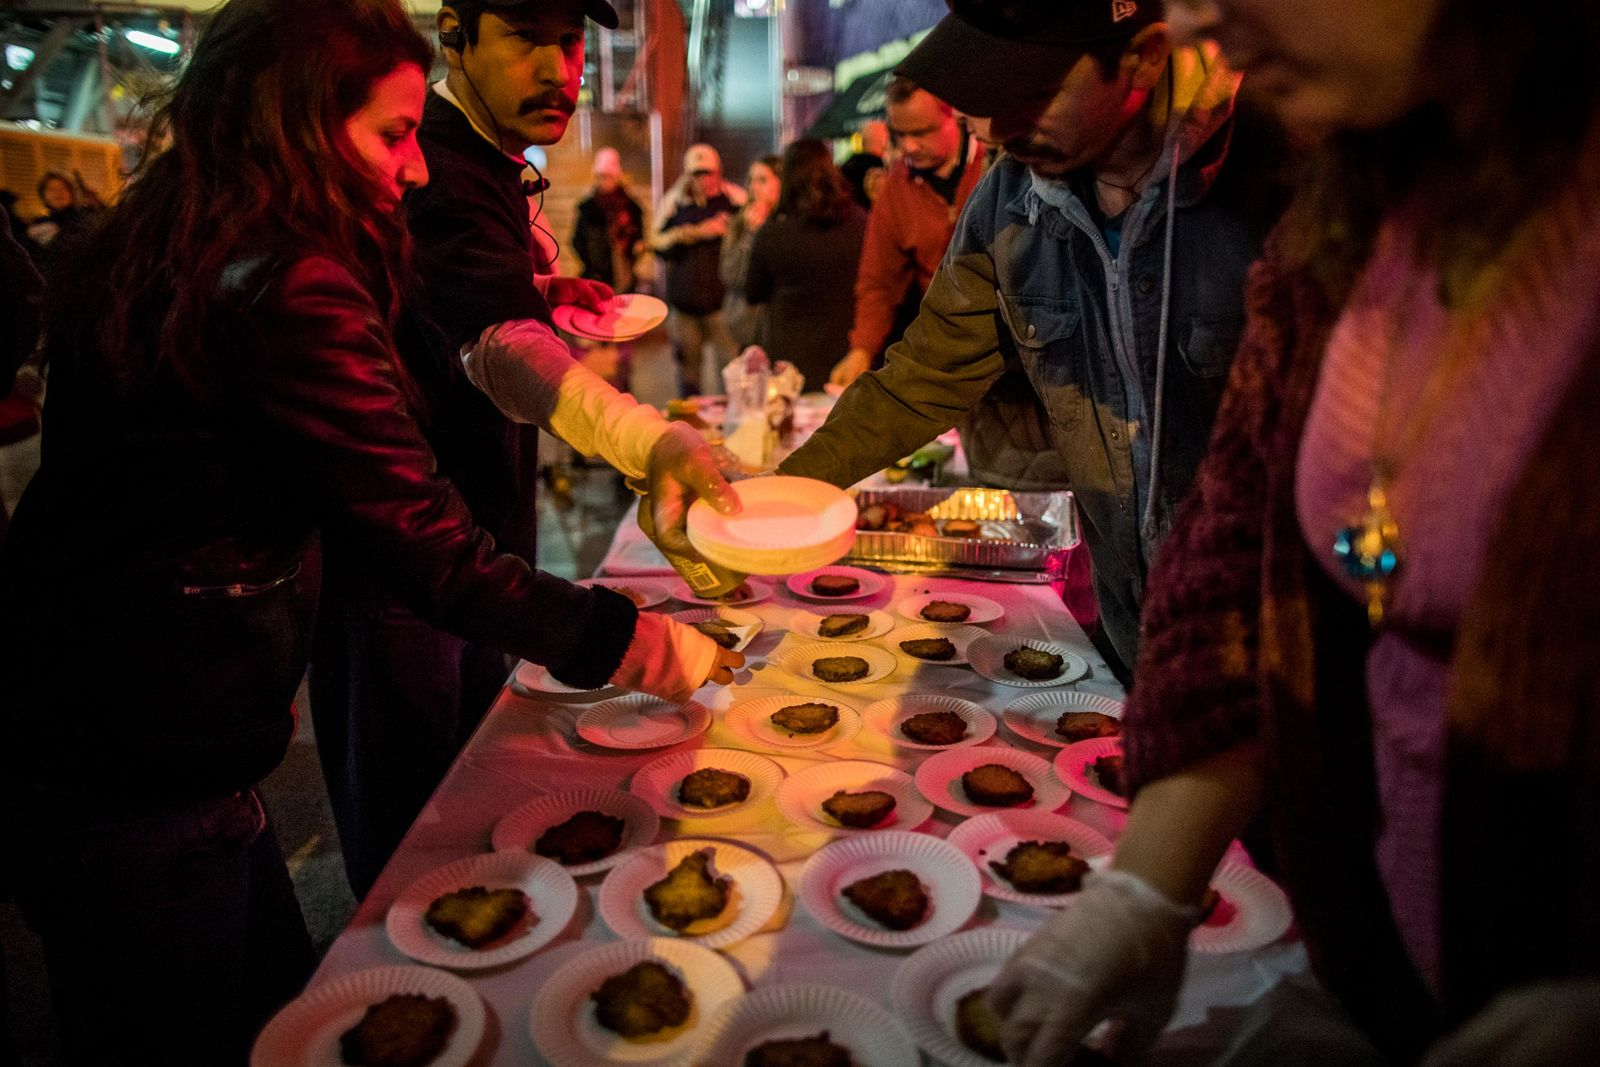 Latkes are handed out after the lighting of the Grand Menorah in downtown Las Vegas on Sunday, Dec. 2. The ceremony featured a 20-foot Grand Menorah, which will remain on display throughout the Hanukkah season. CREDIT: Joe Buglewicz/Las Vegas News Bureau